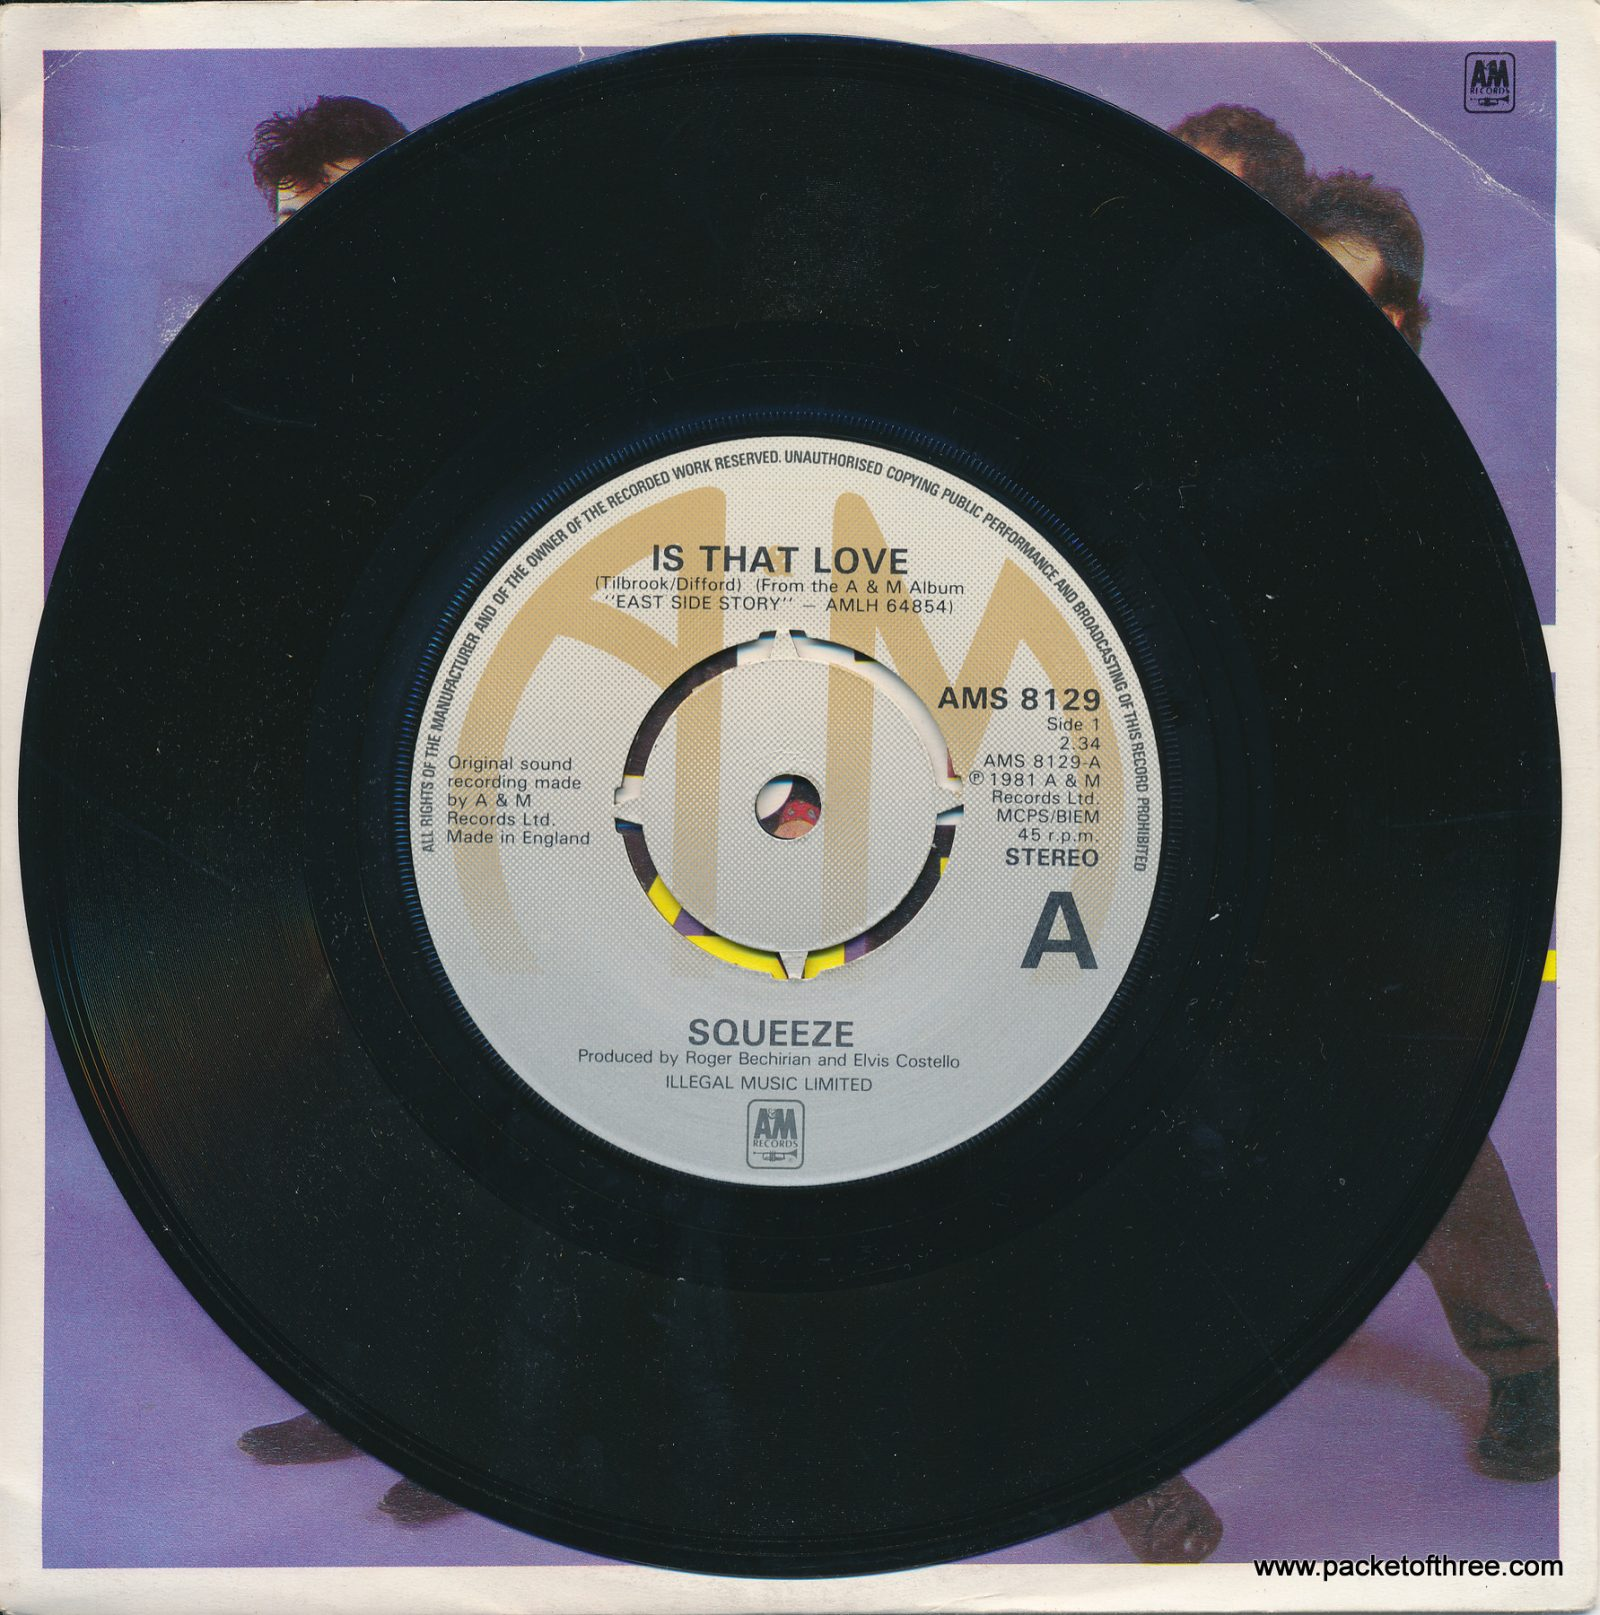 "Is That Love - UK - 7"" - picture sleeve - jukebox copy"